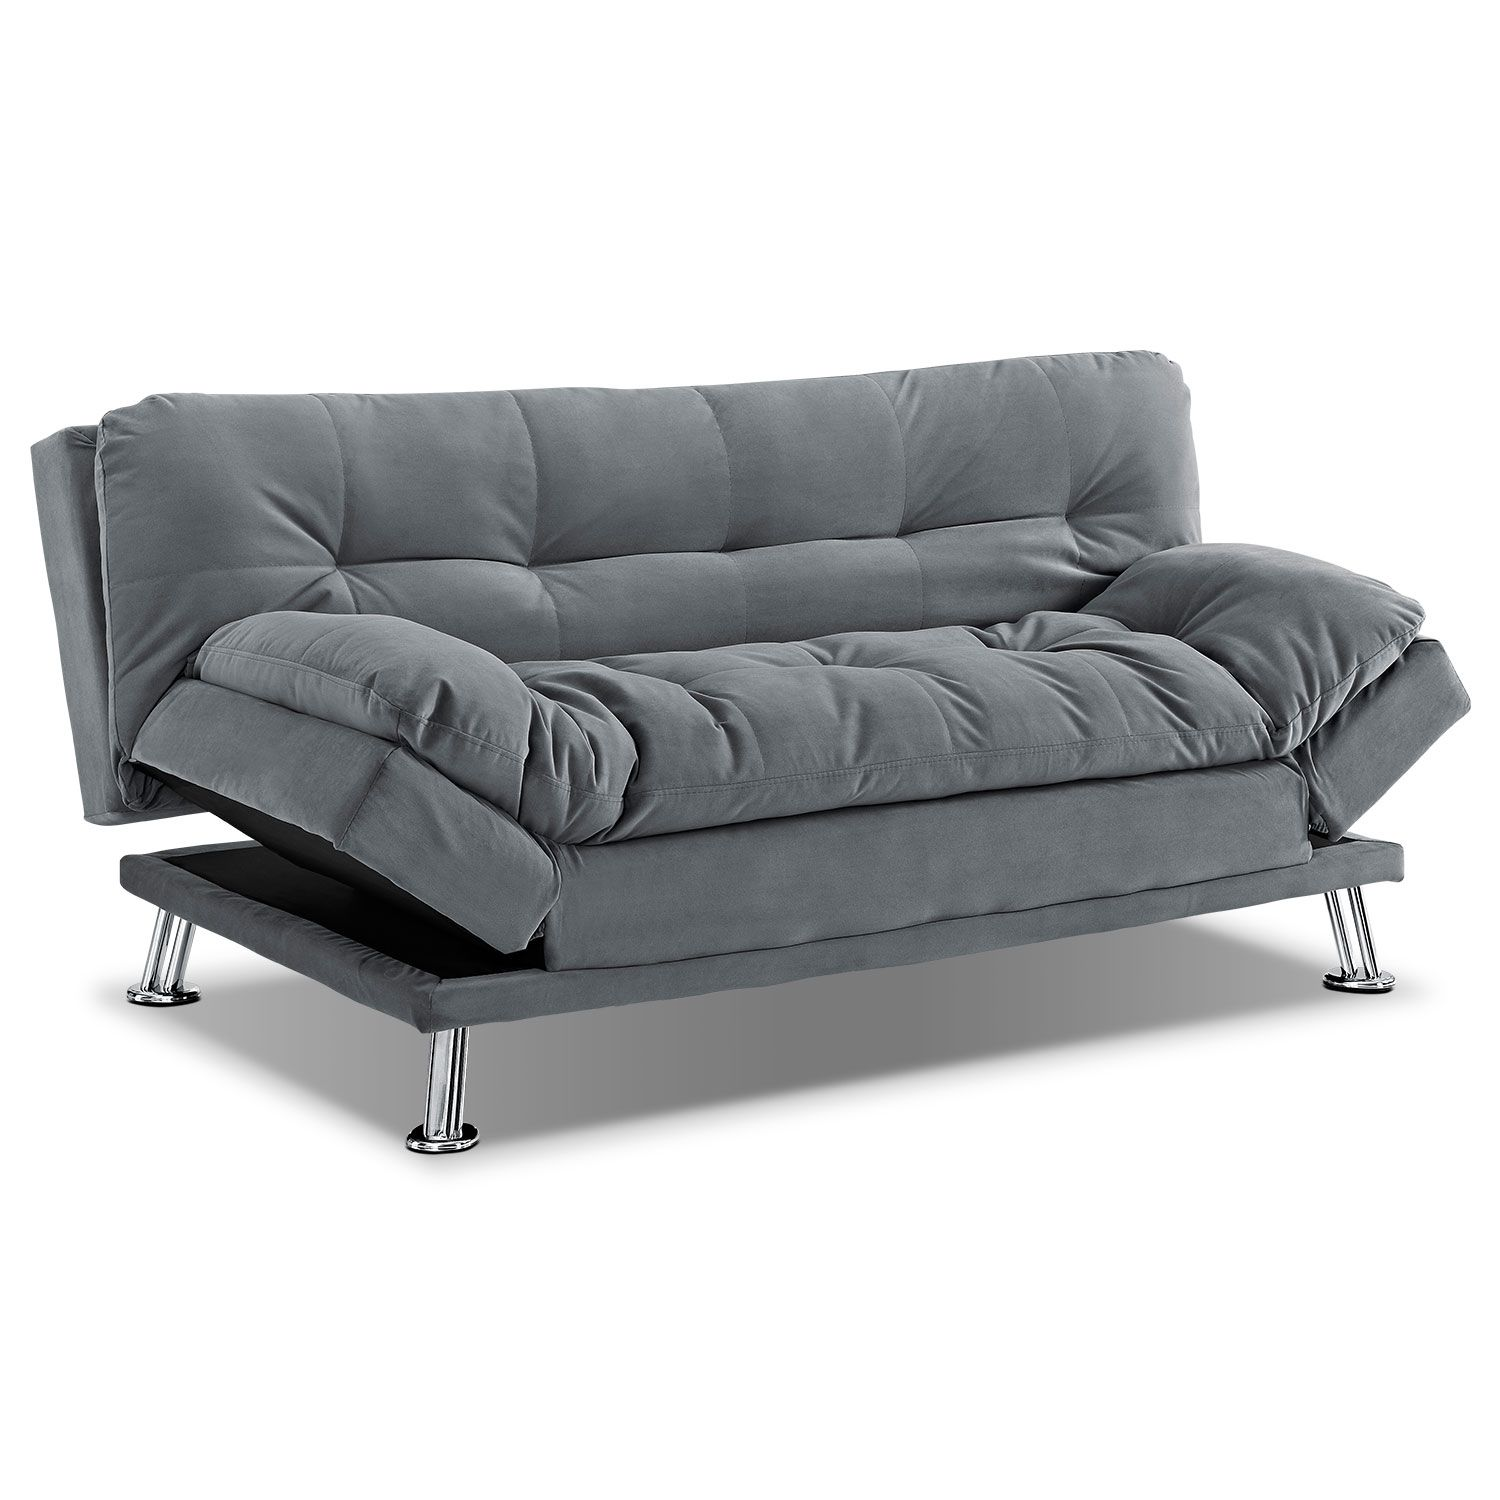 Waltz Gray Futon Sofa Bed Value City Furniture